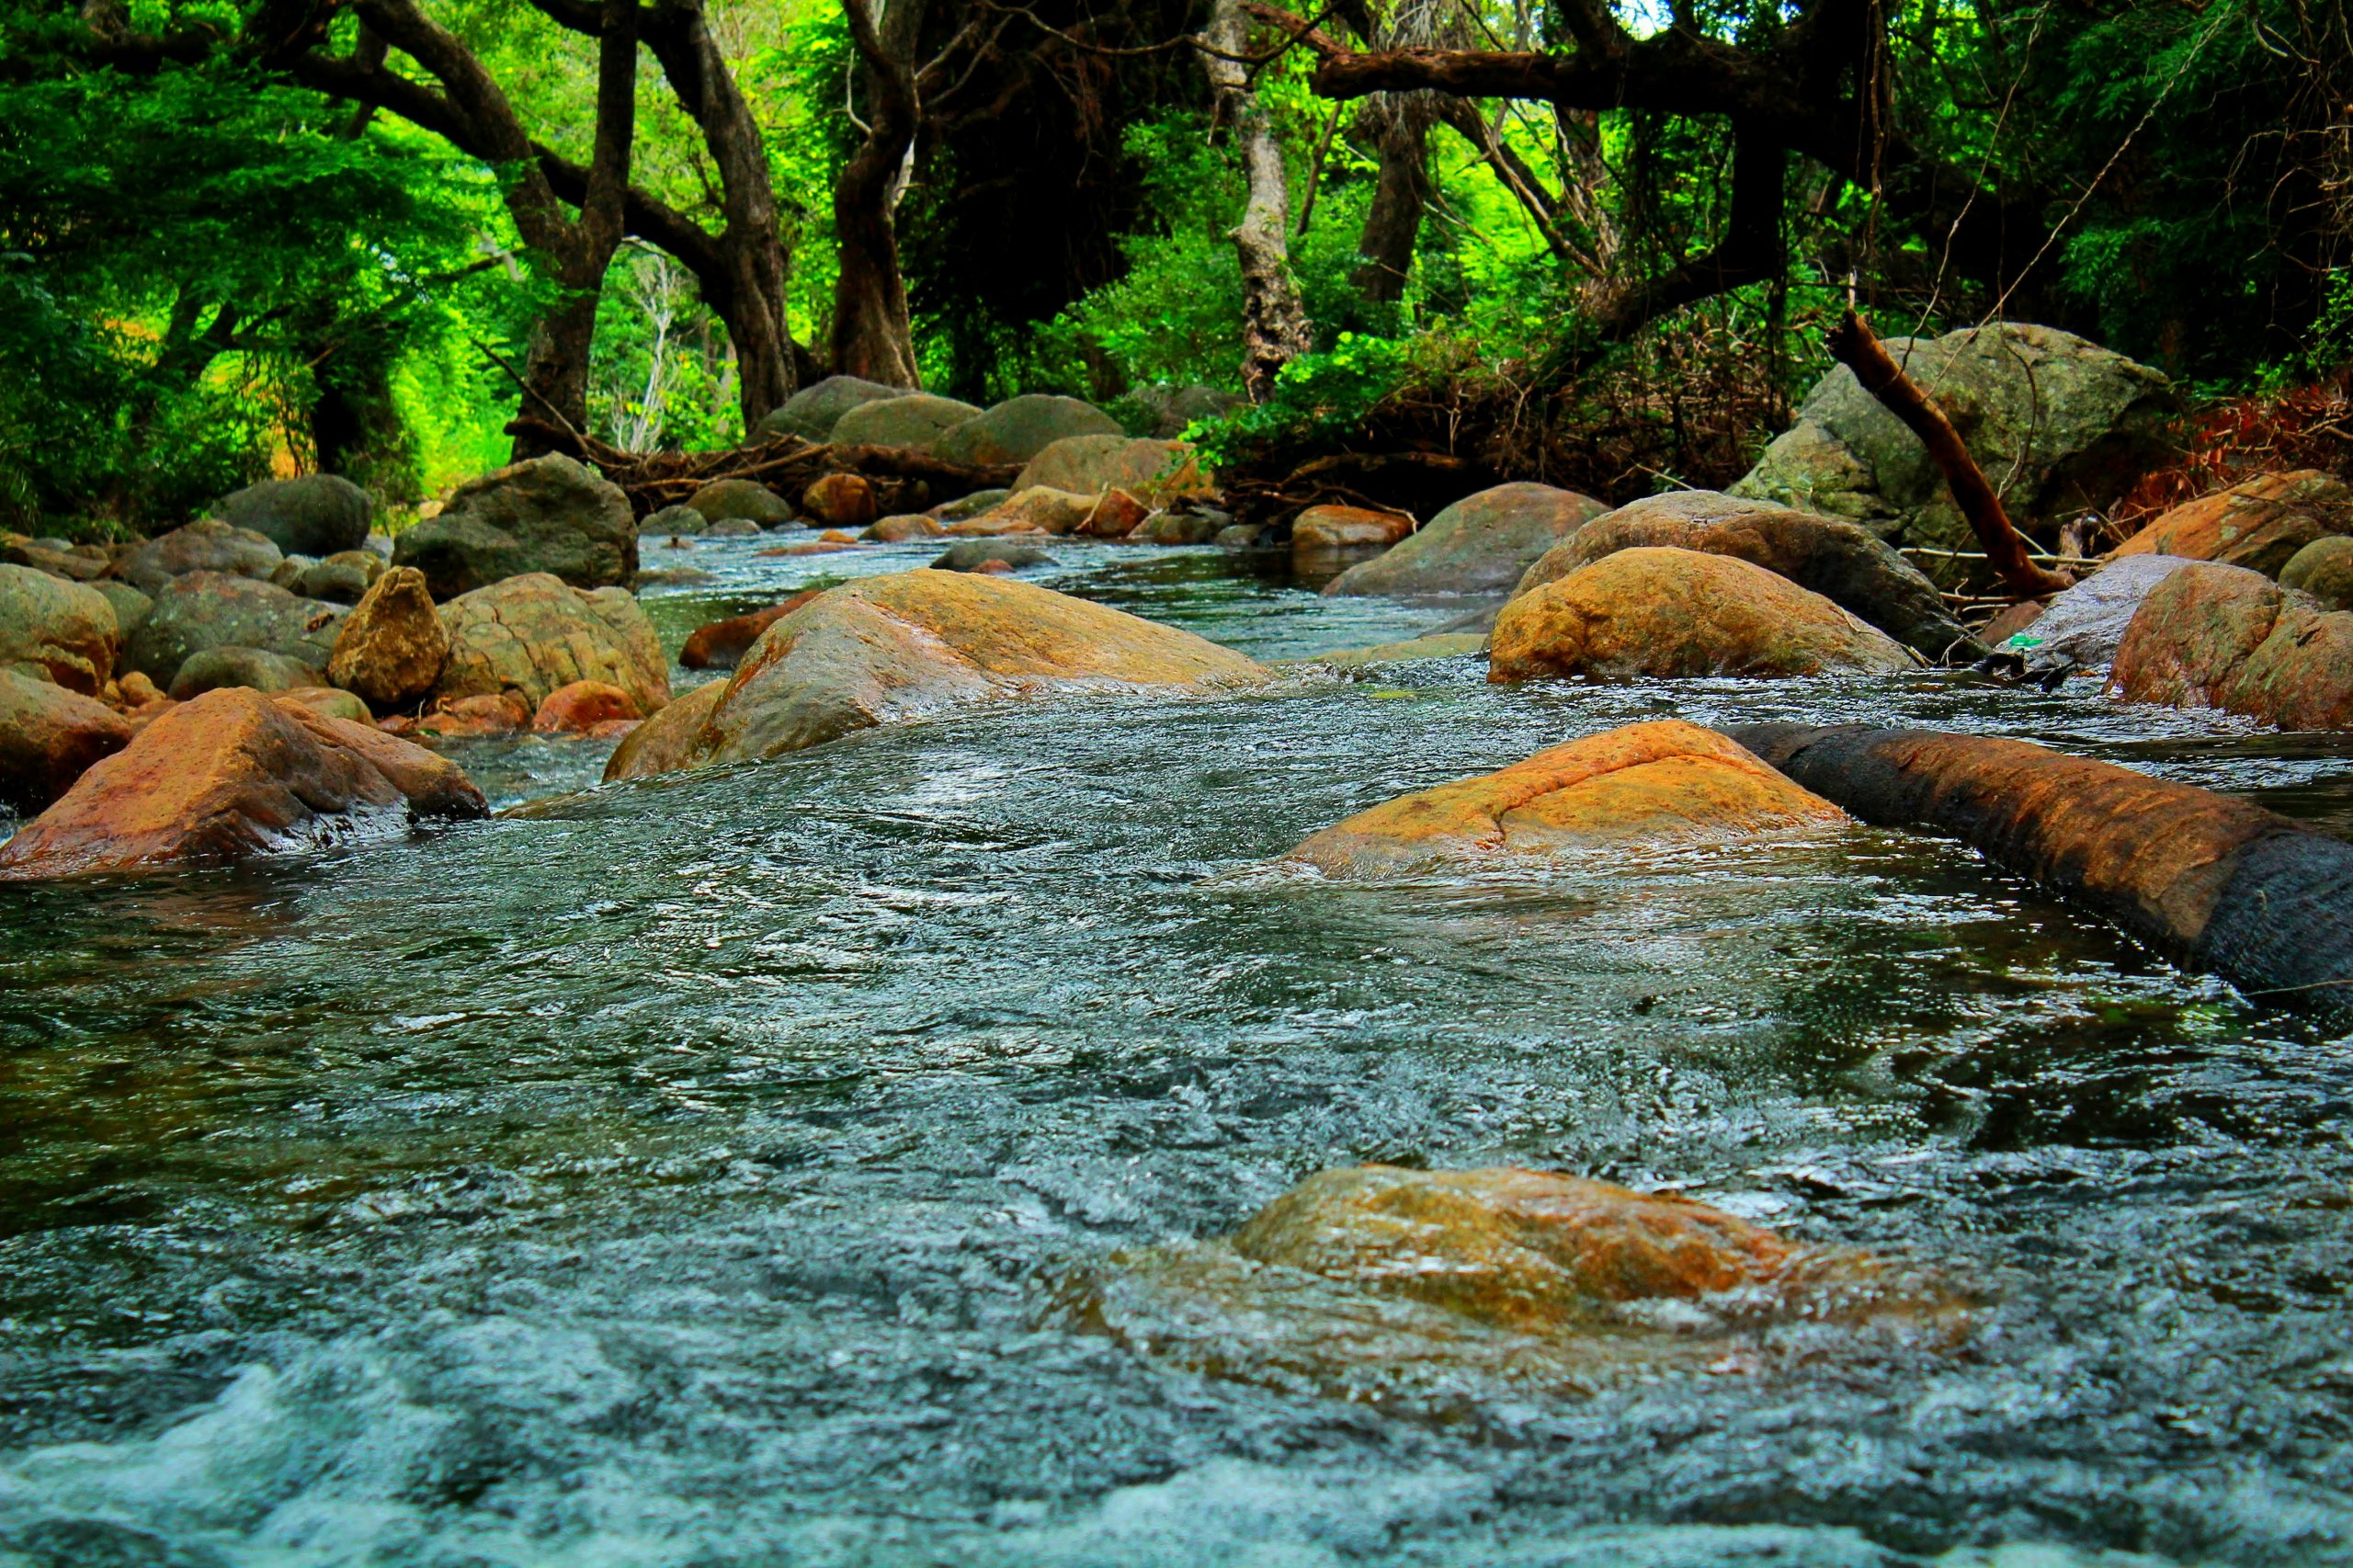 a river of flowing water